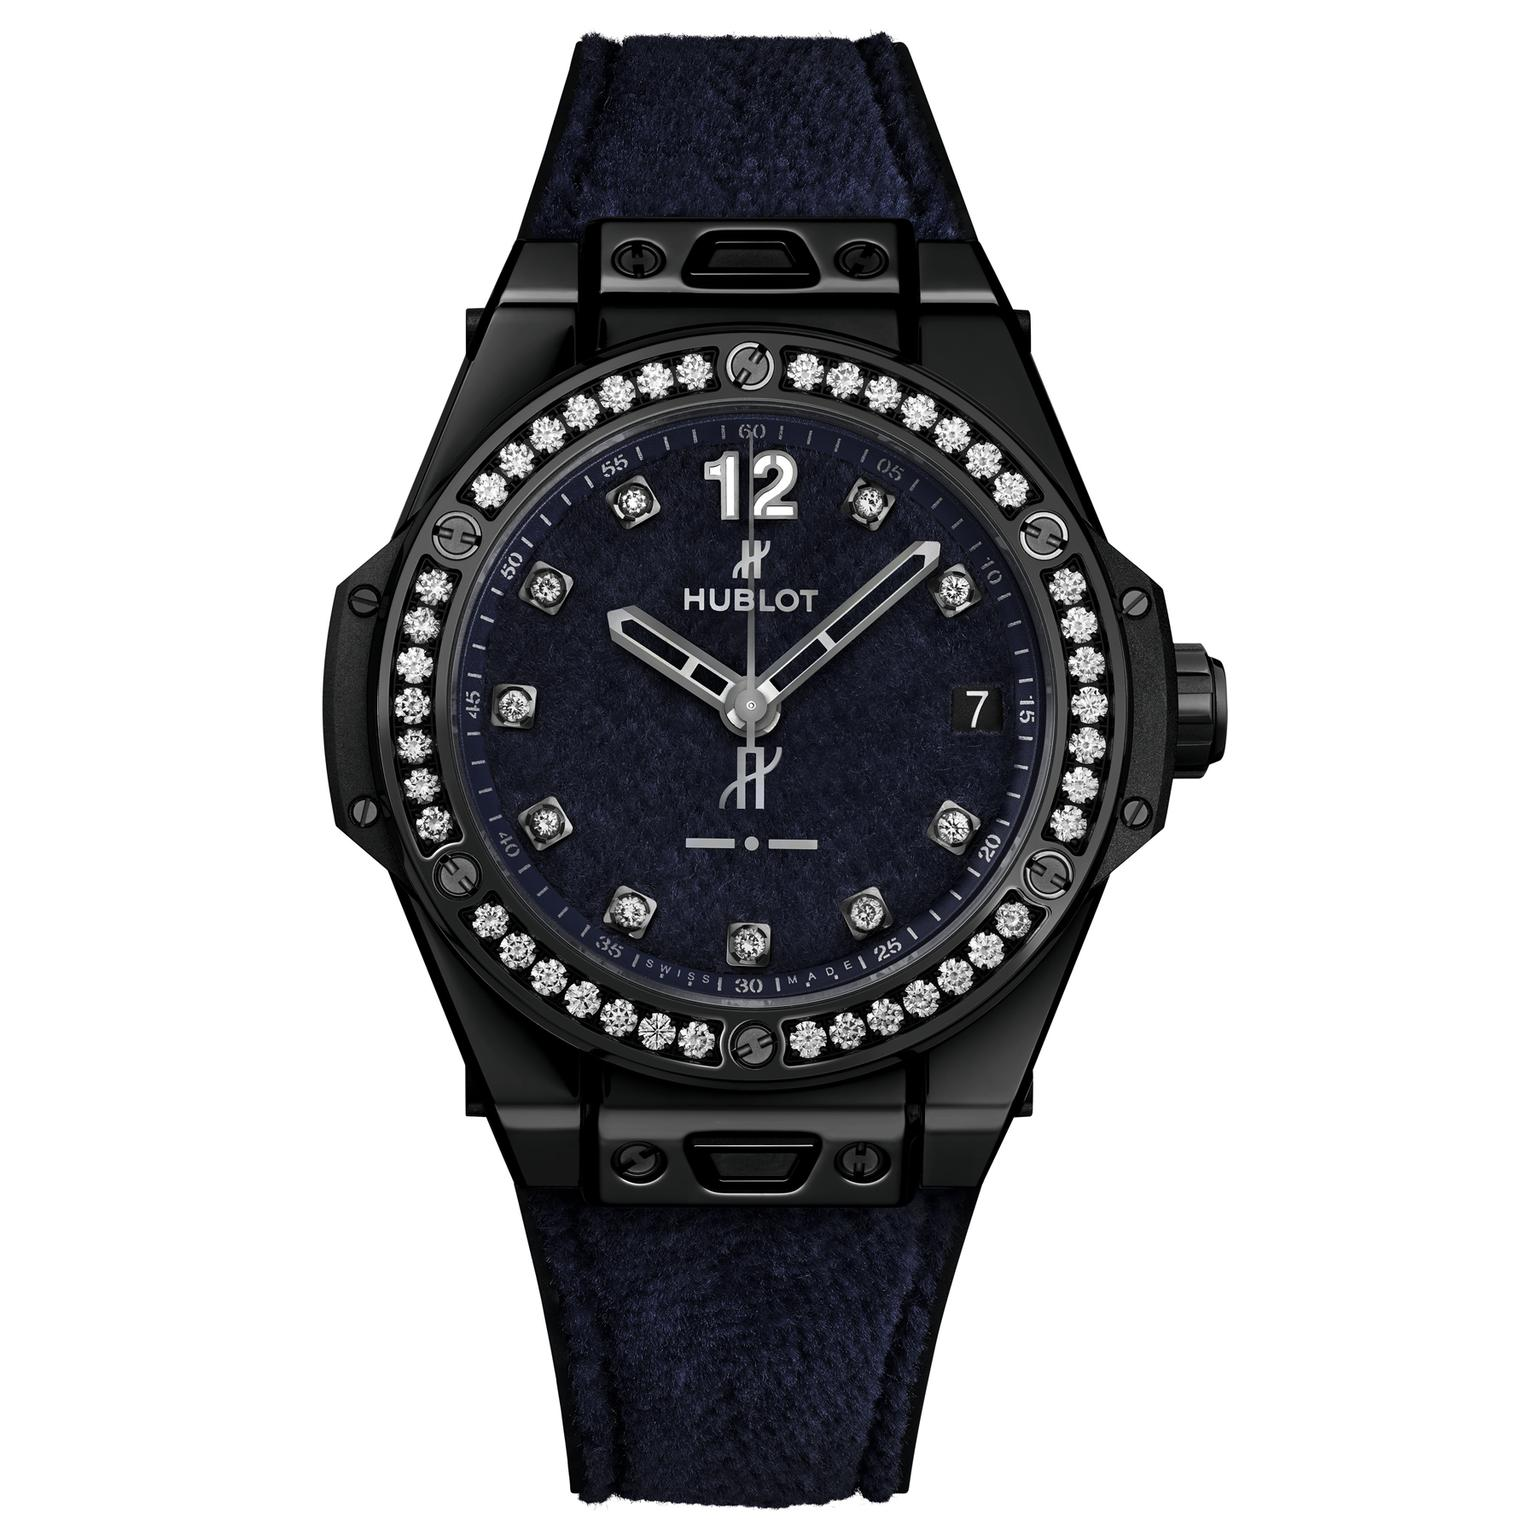 Hublot italia independent purple velvet